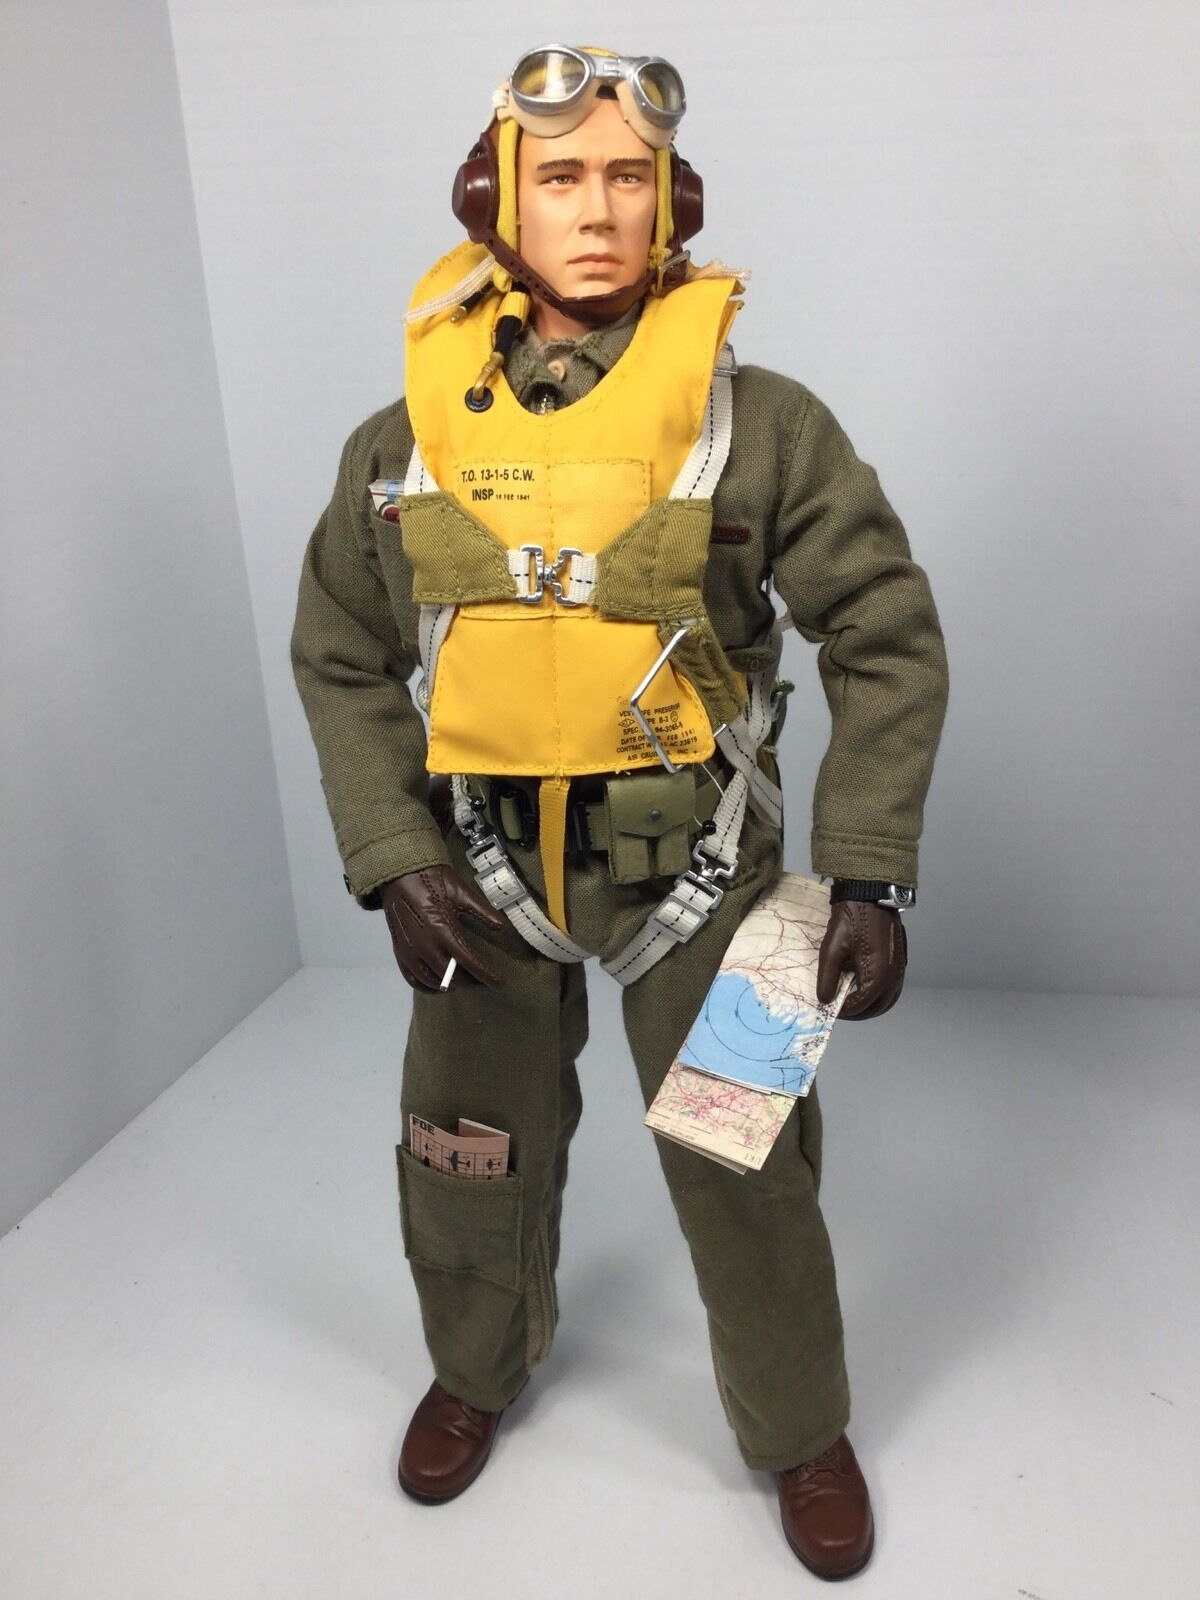 1 6 DRAGON US FIGHTER PILOT WW2 FULL PARACHUTE US AIR FORCE P-51 P-40 BBI DID RC